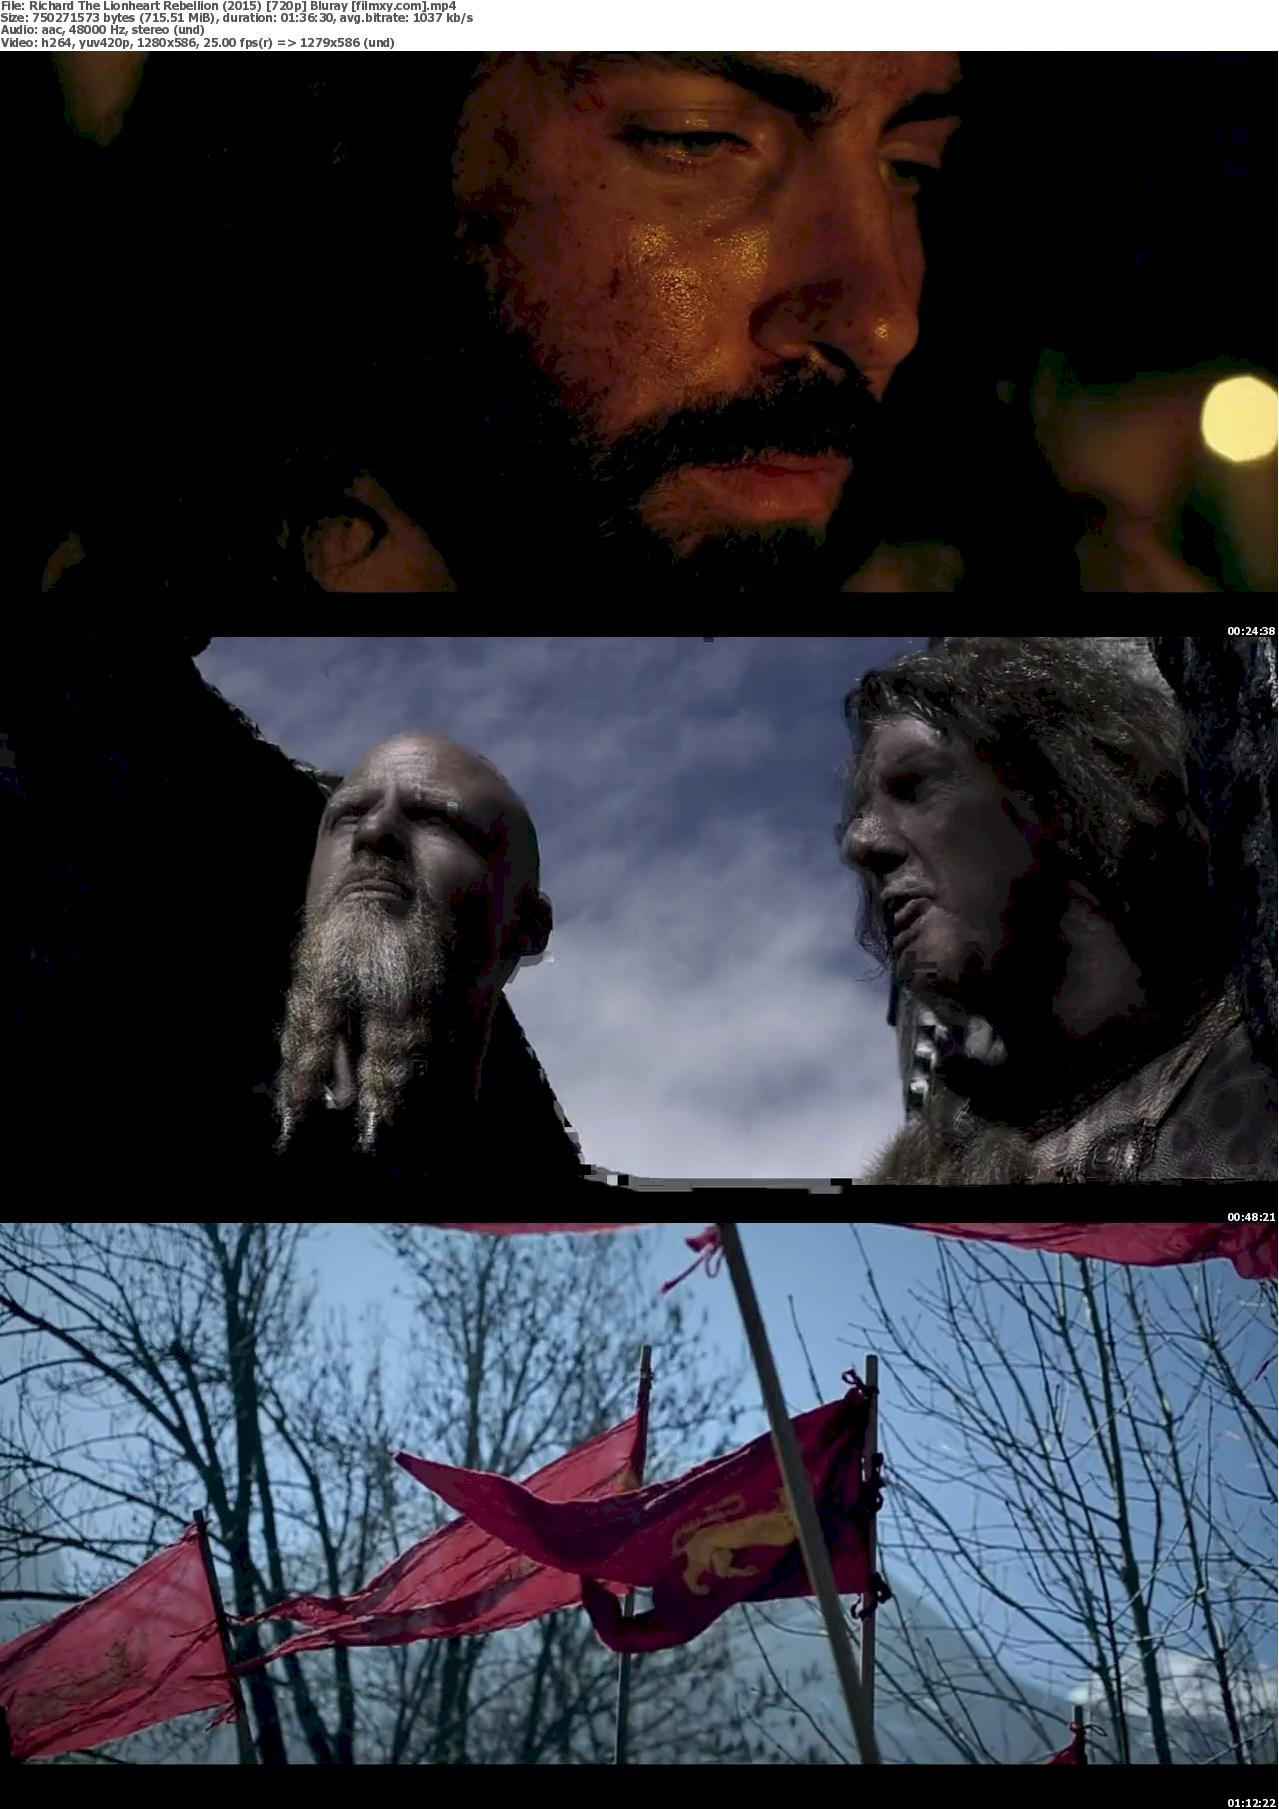 Richard The Lionheart Rebellion (2015) 720p & 1080p Bluray Free Download 720p Screenshot